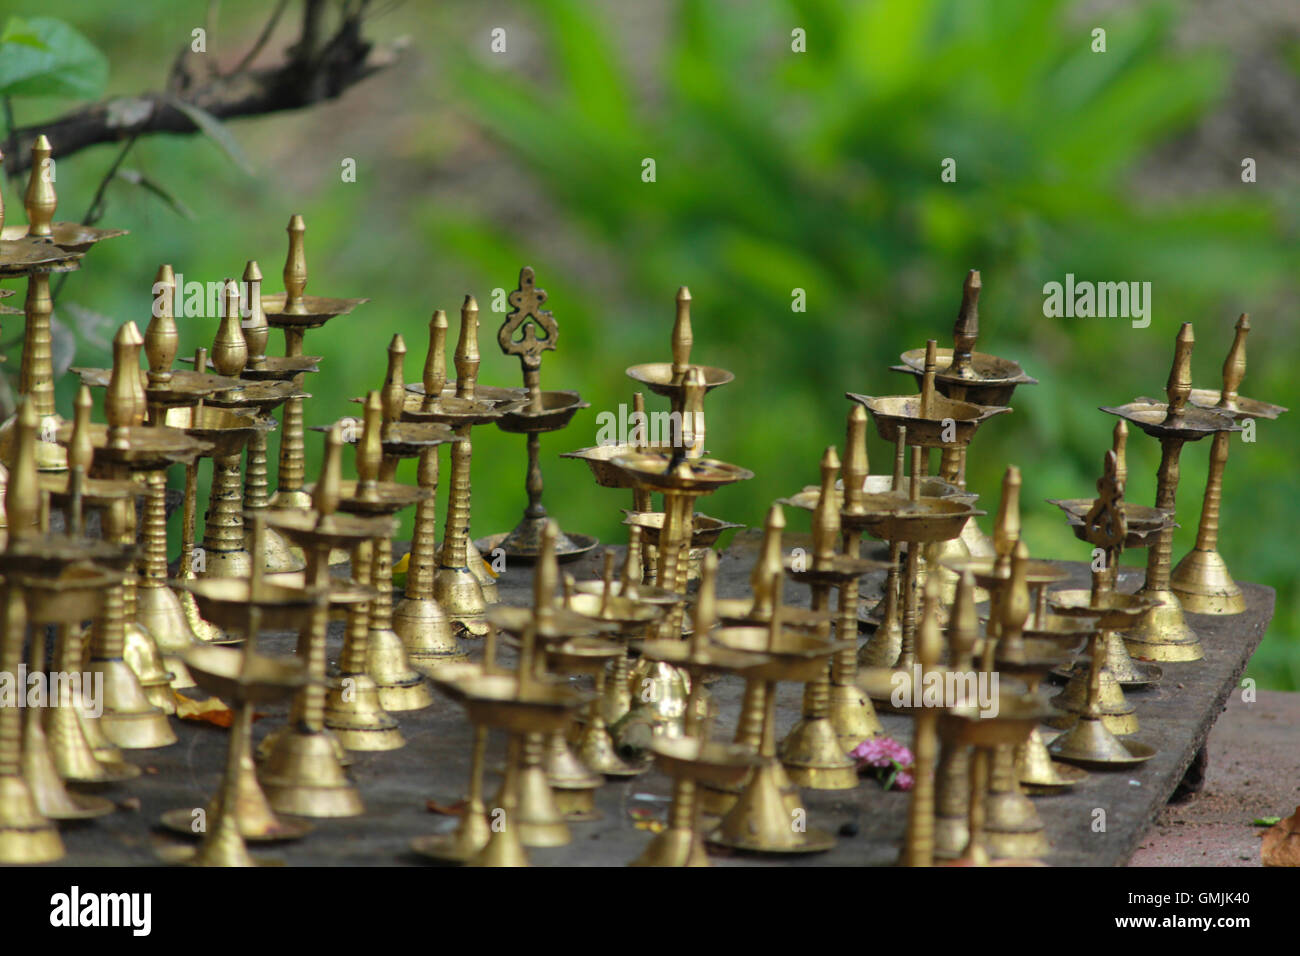 Group Of Brass Temple Lamps (Indian Oil Lamp) In Green Background.